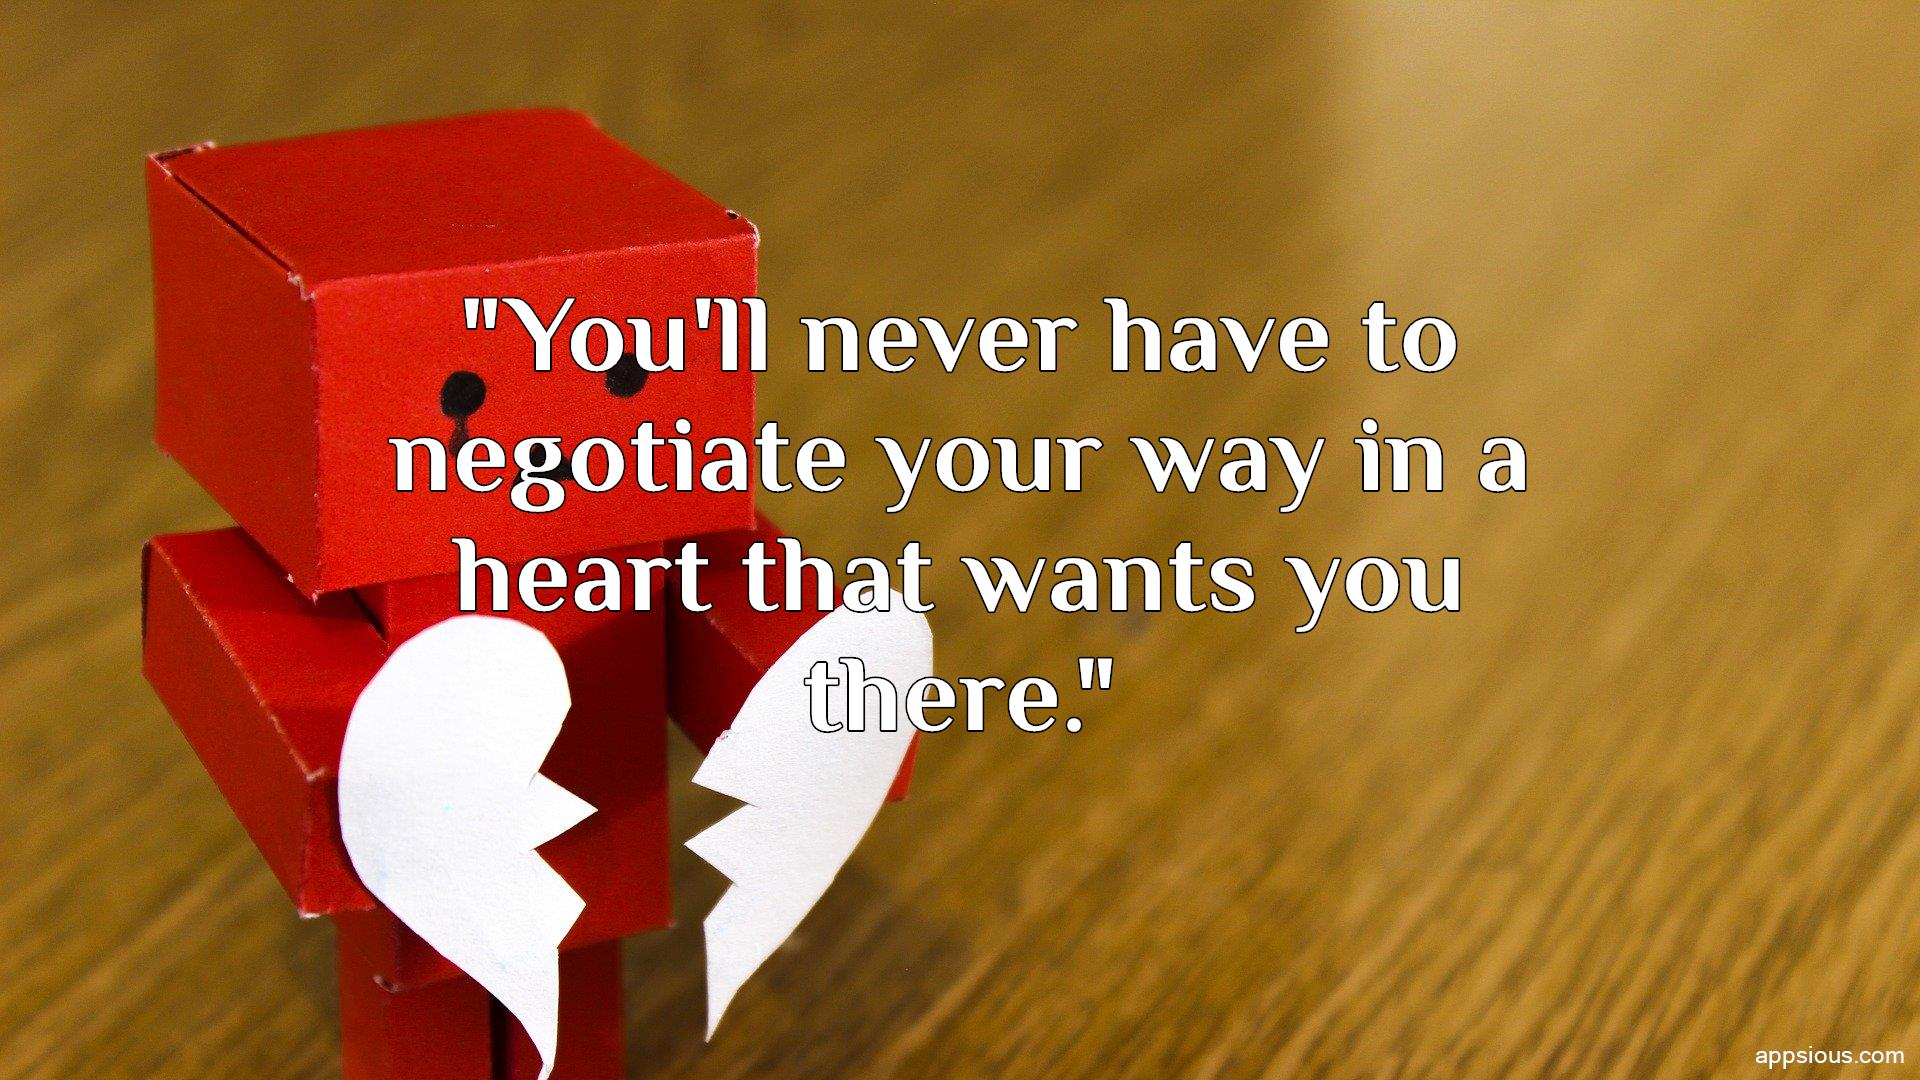 You'll never have to negotiate your way in a heart that wants you there.